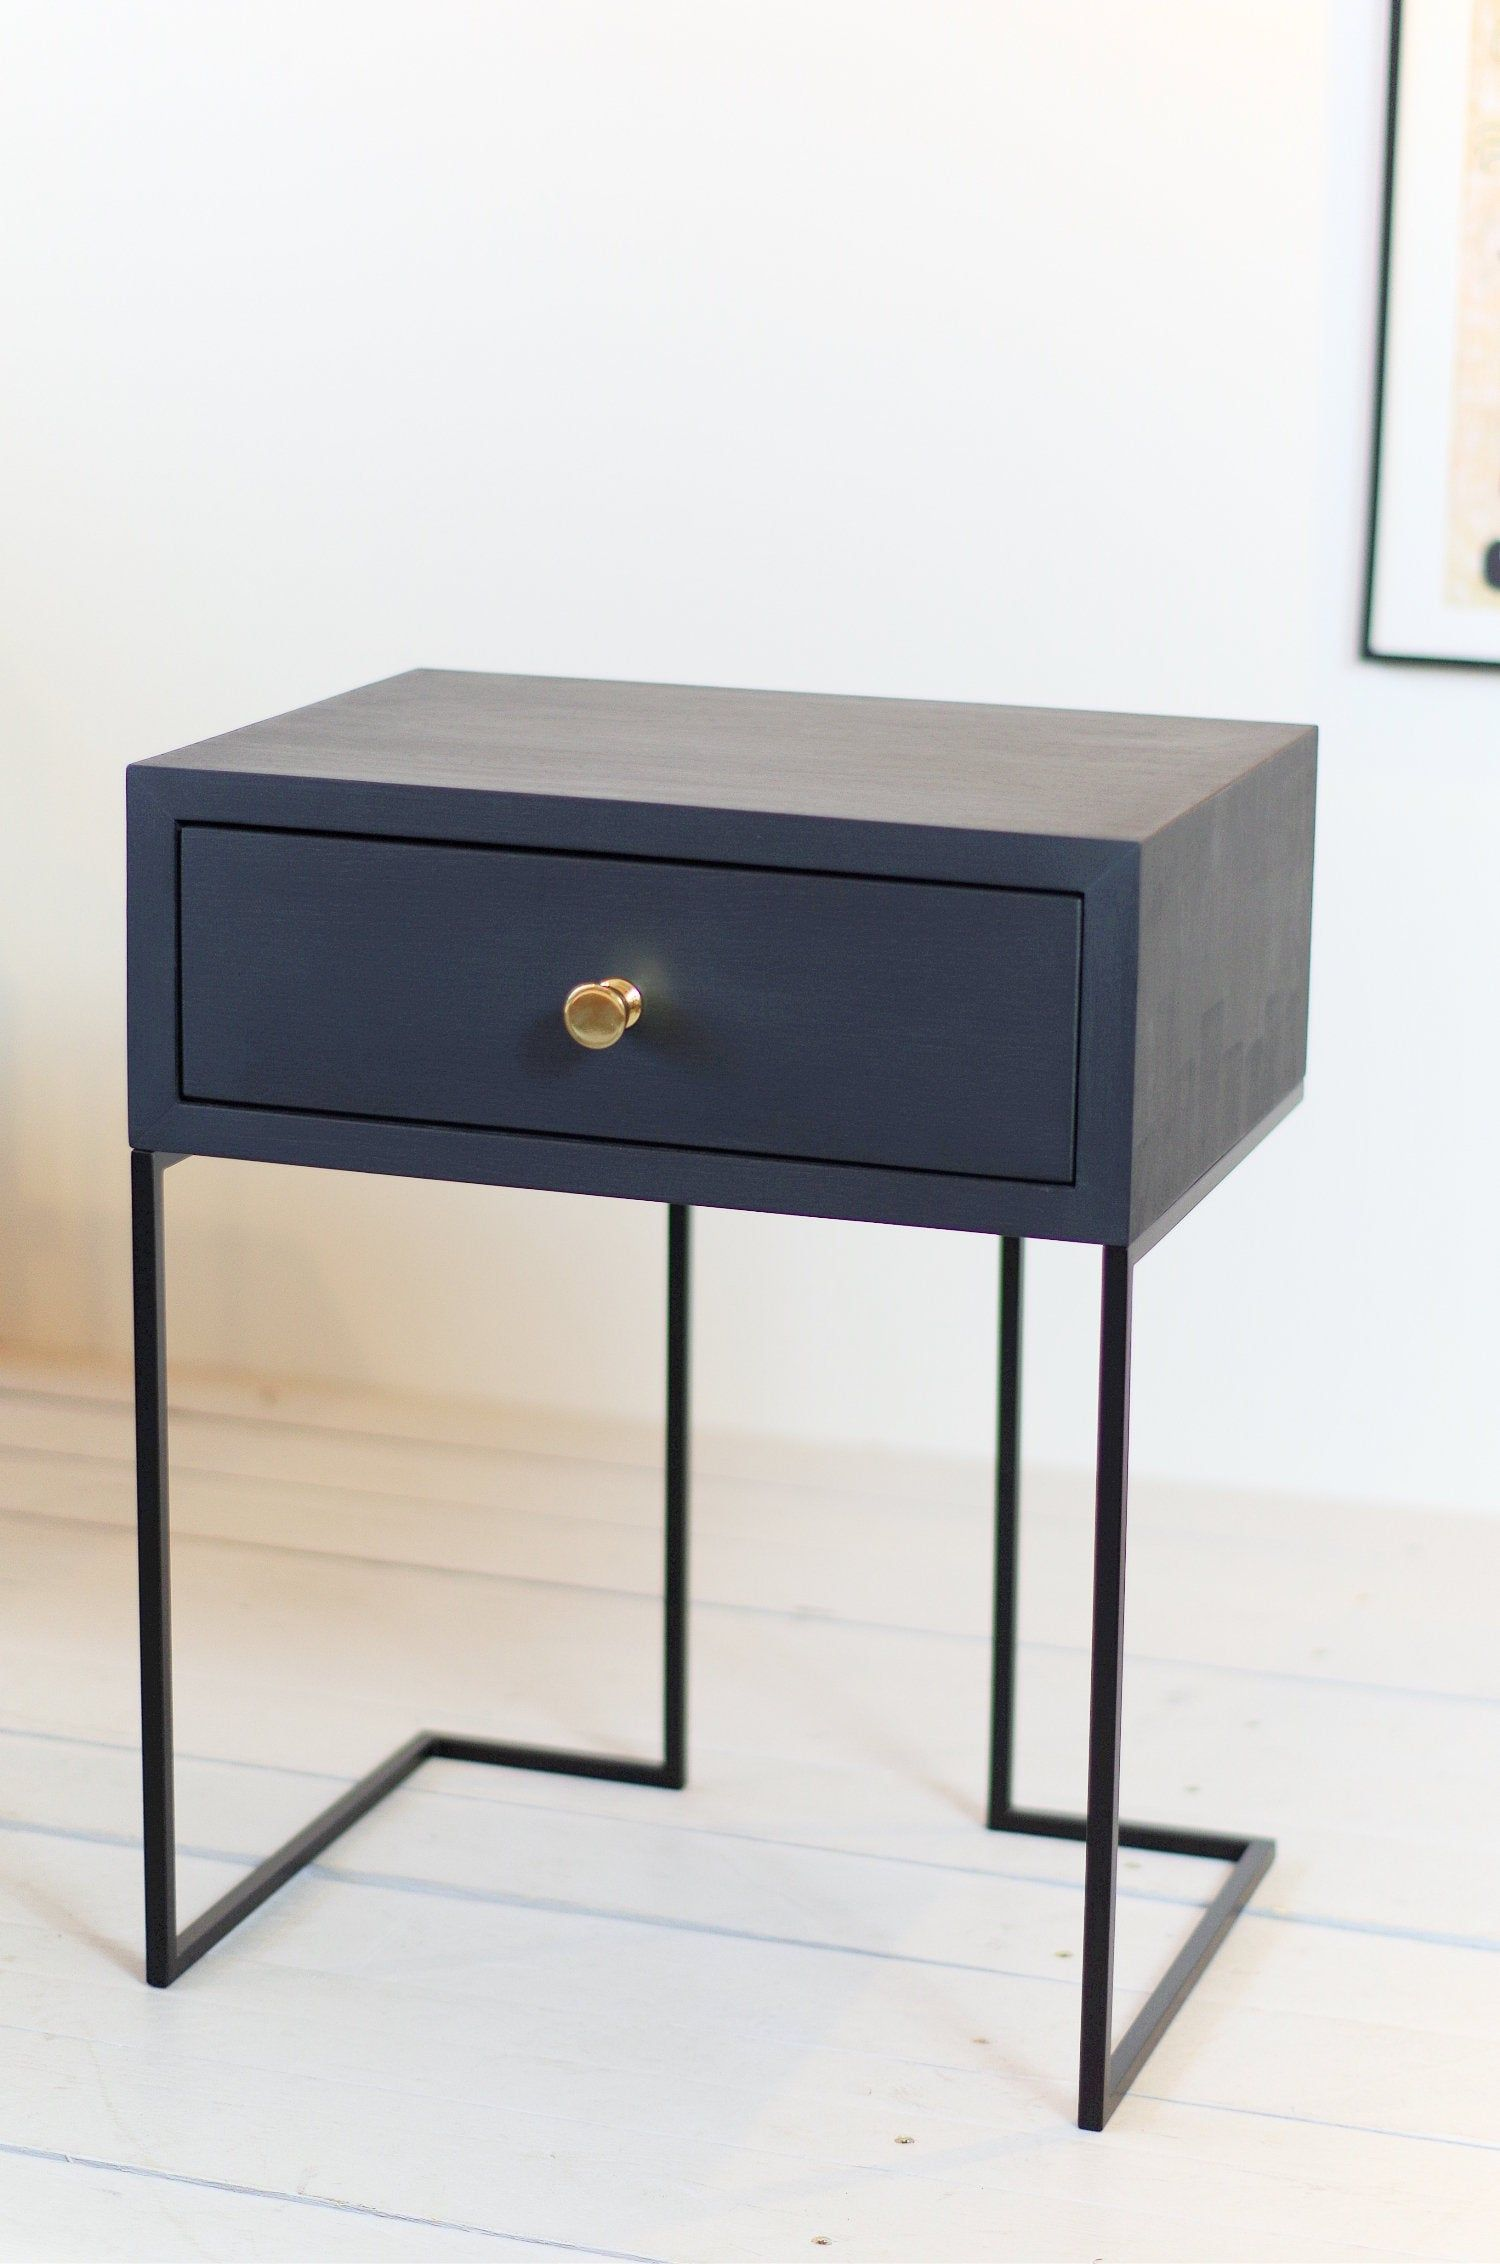 Black Metal Bedside Tables: Mid Century Industrial Style